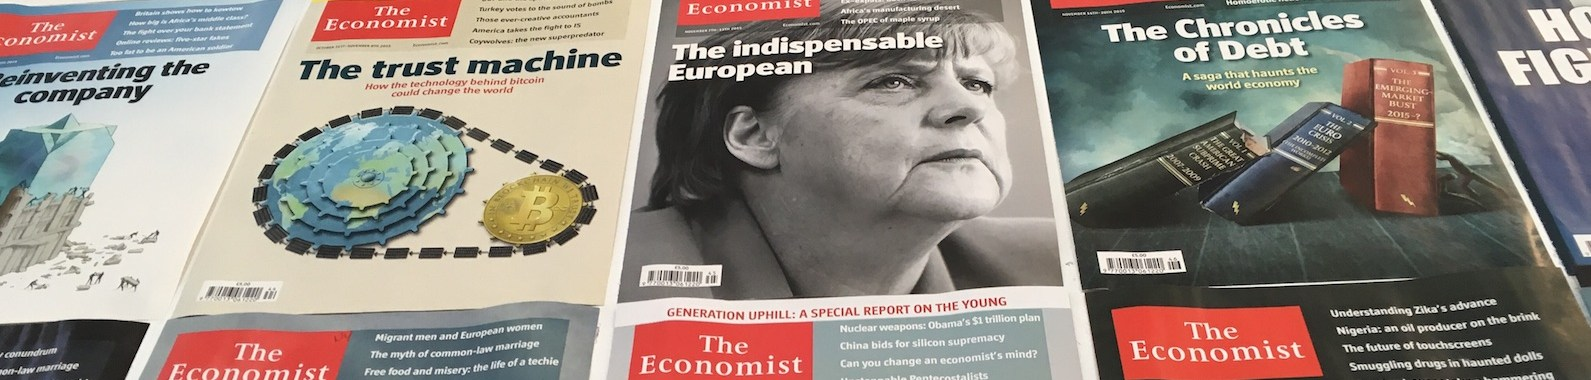 Economist-featured2